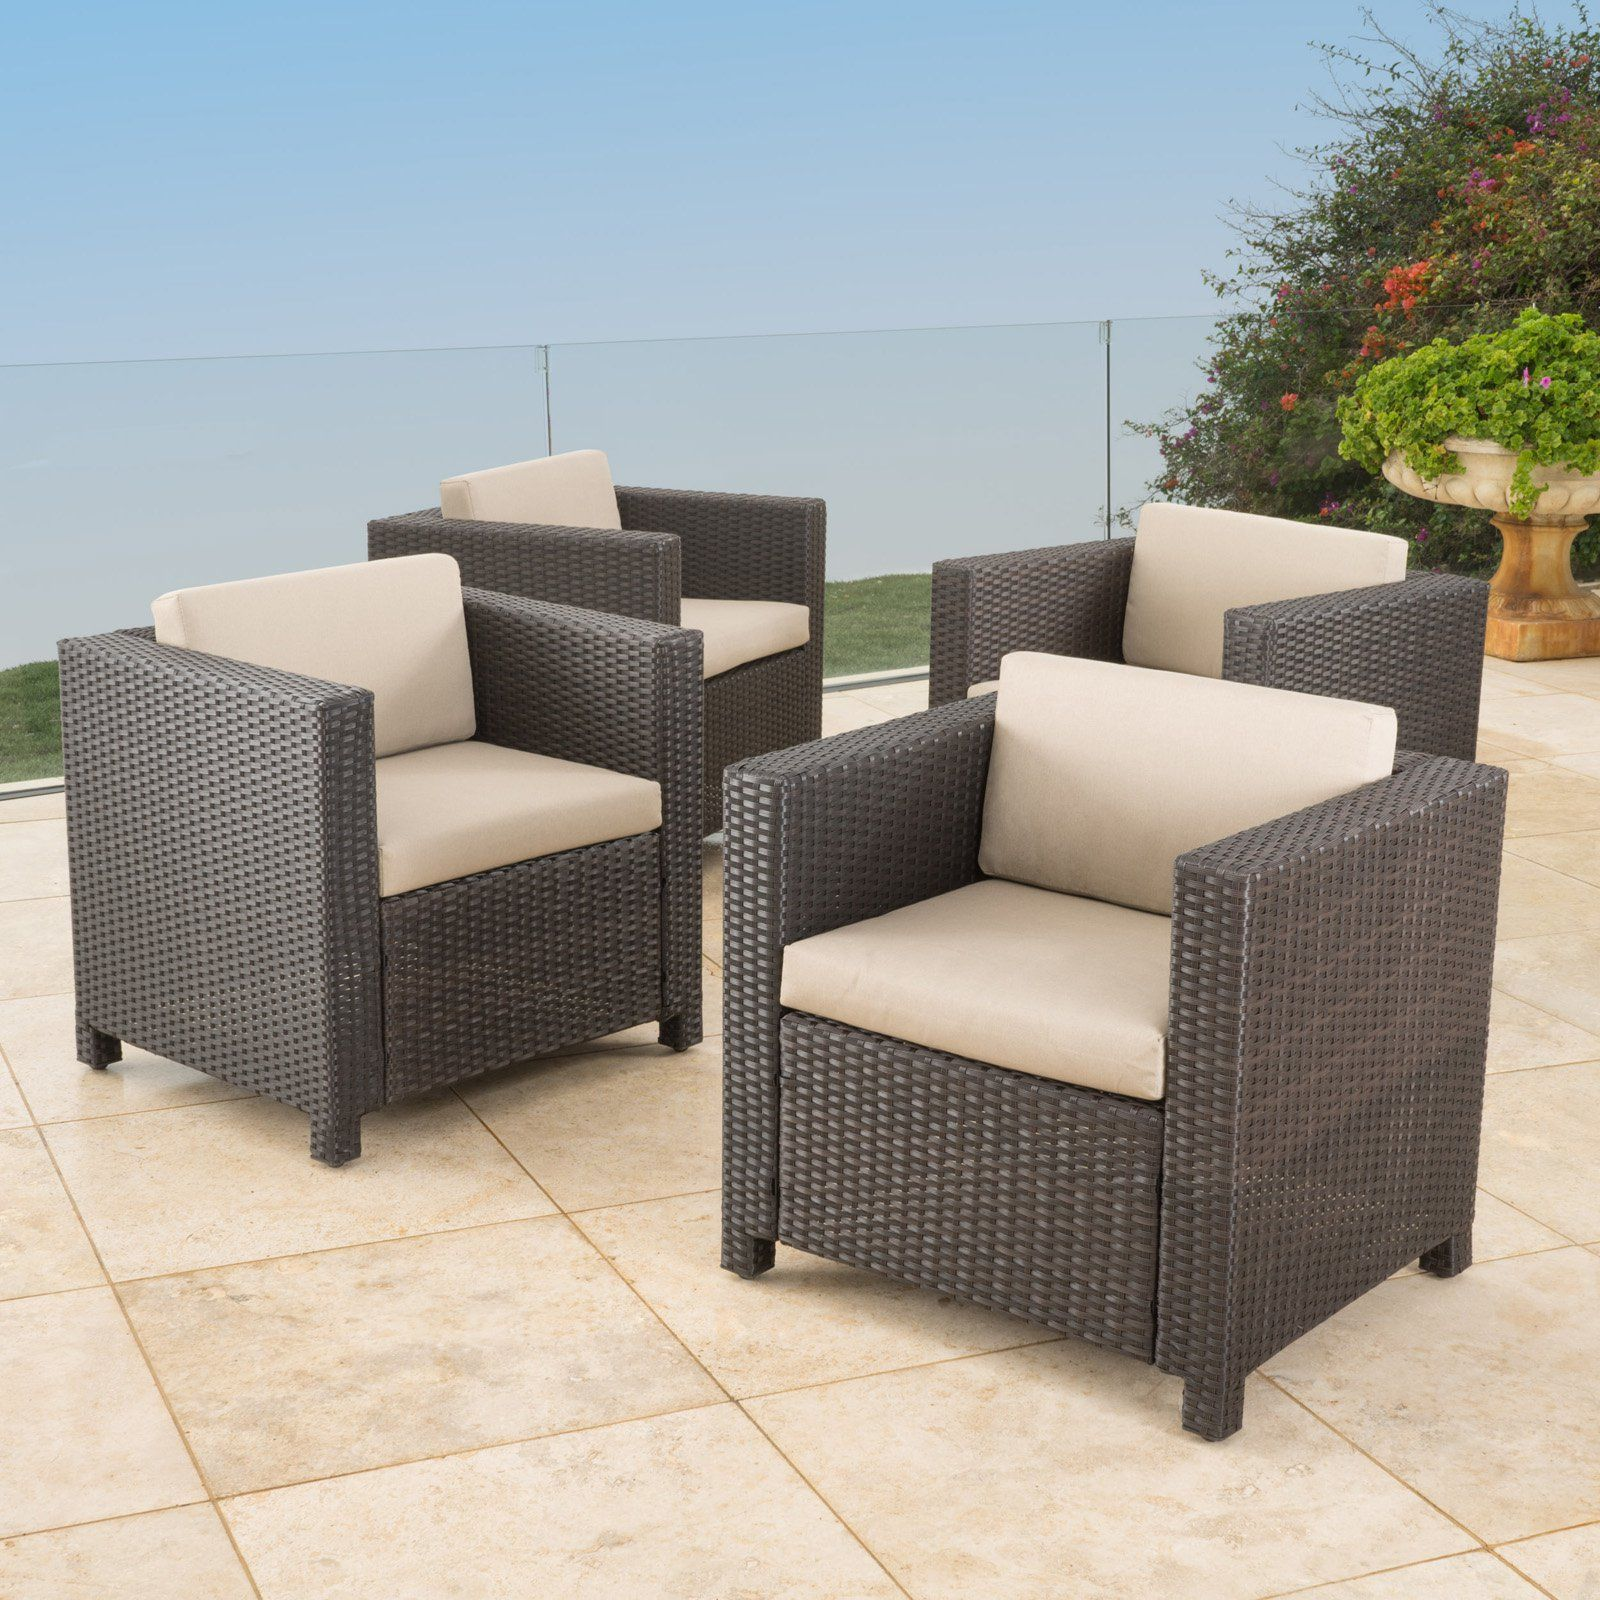 Outdoor Murano Patio Wicker Club Chairs With Water Resistant